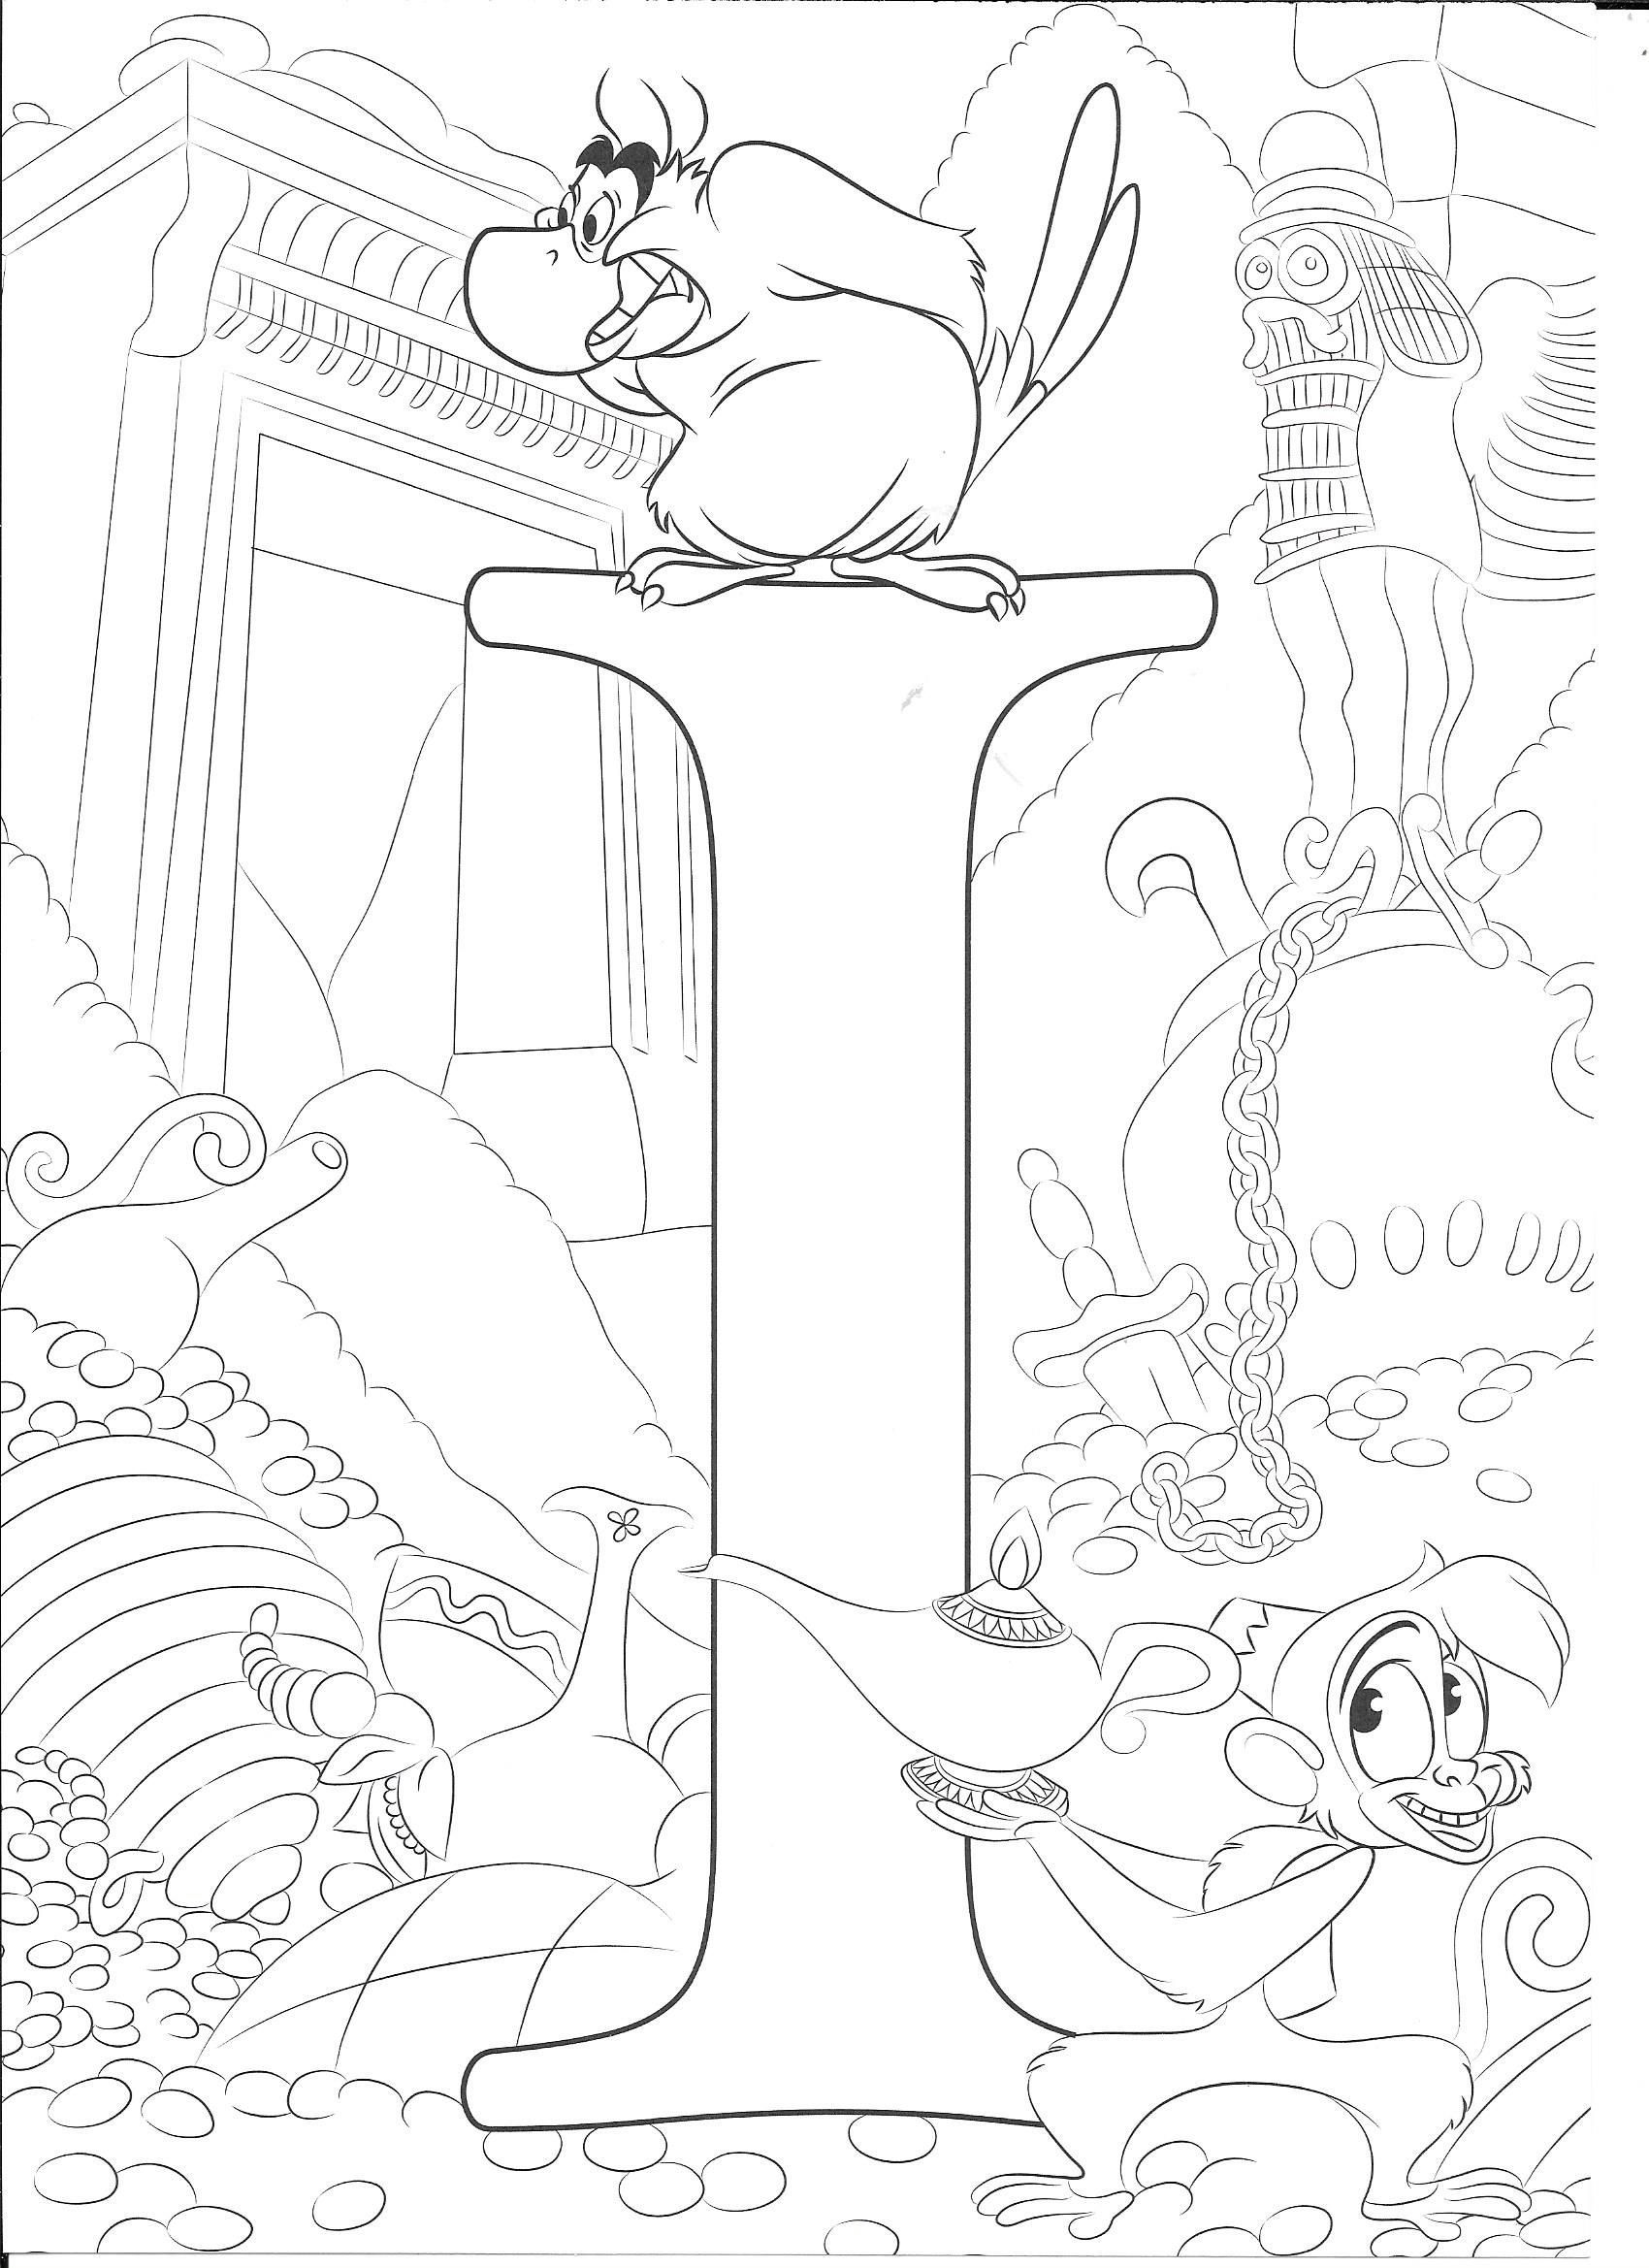 Coloring Page Disney Coloring Sheets Disney Coloring Pages Disney Alphabet